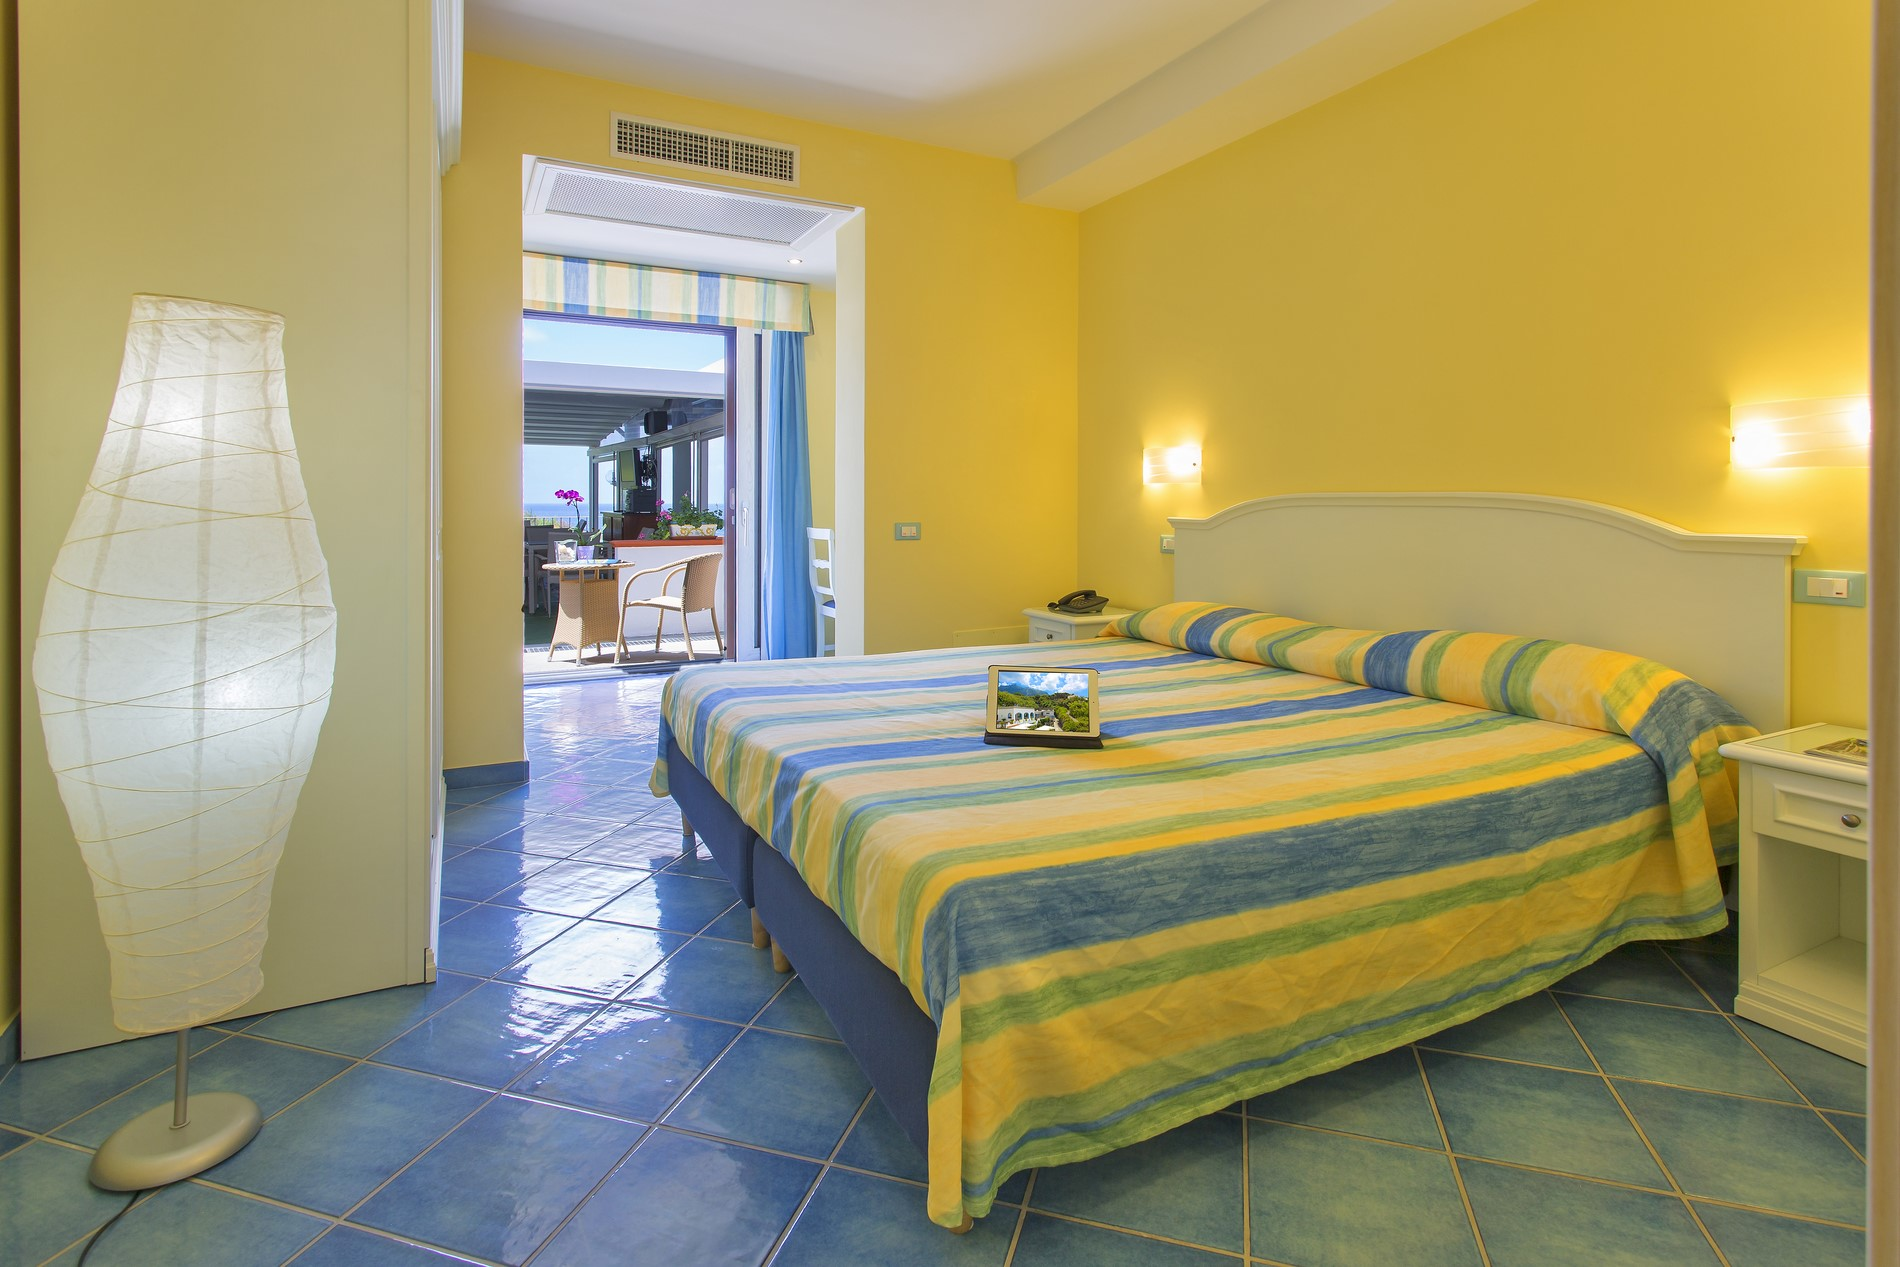 http://www.hotelcavadellisola.it/wp-content/uploads/2016/07/confort2-Copia.jpg